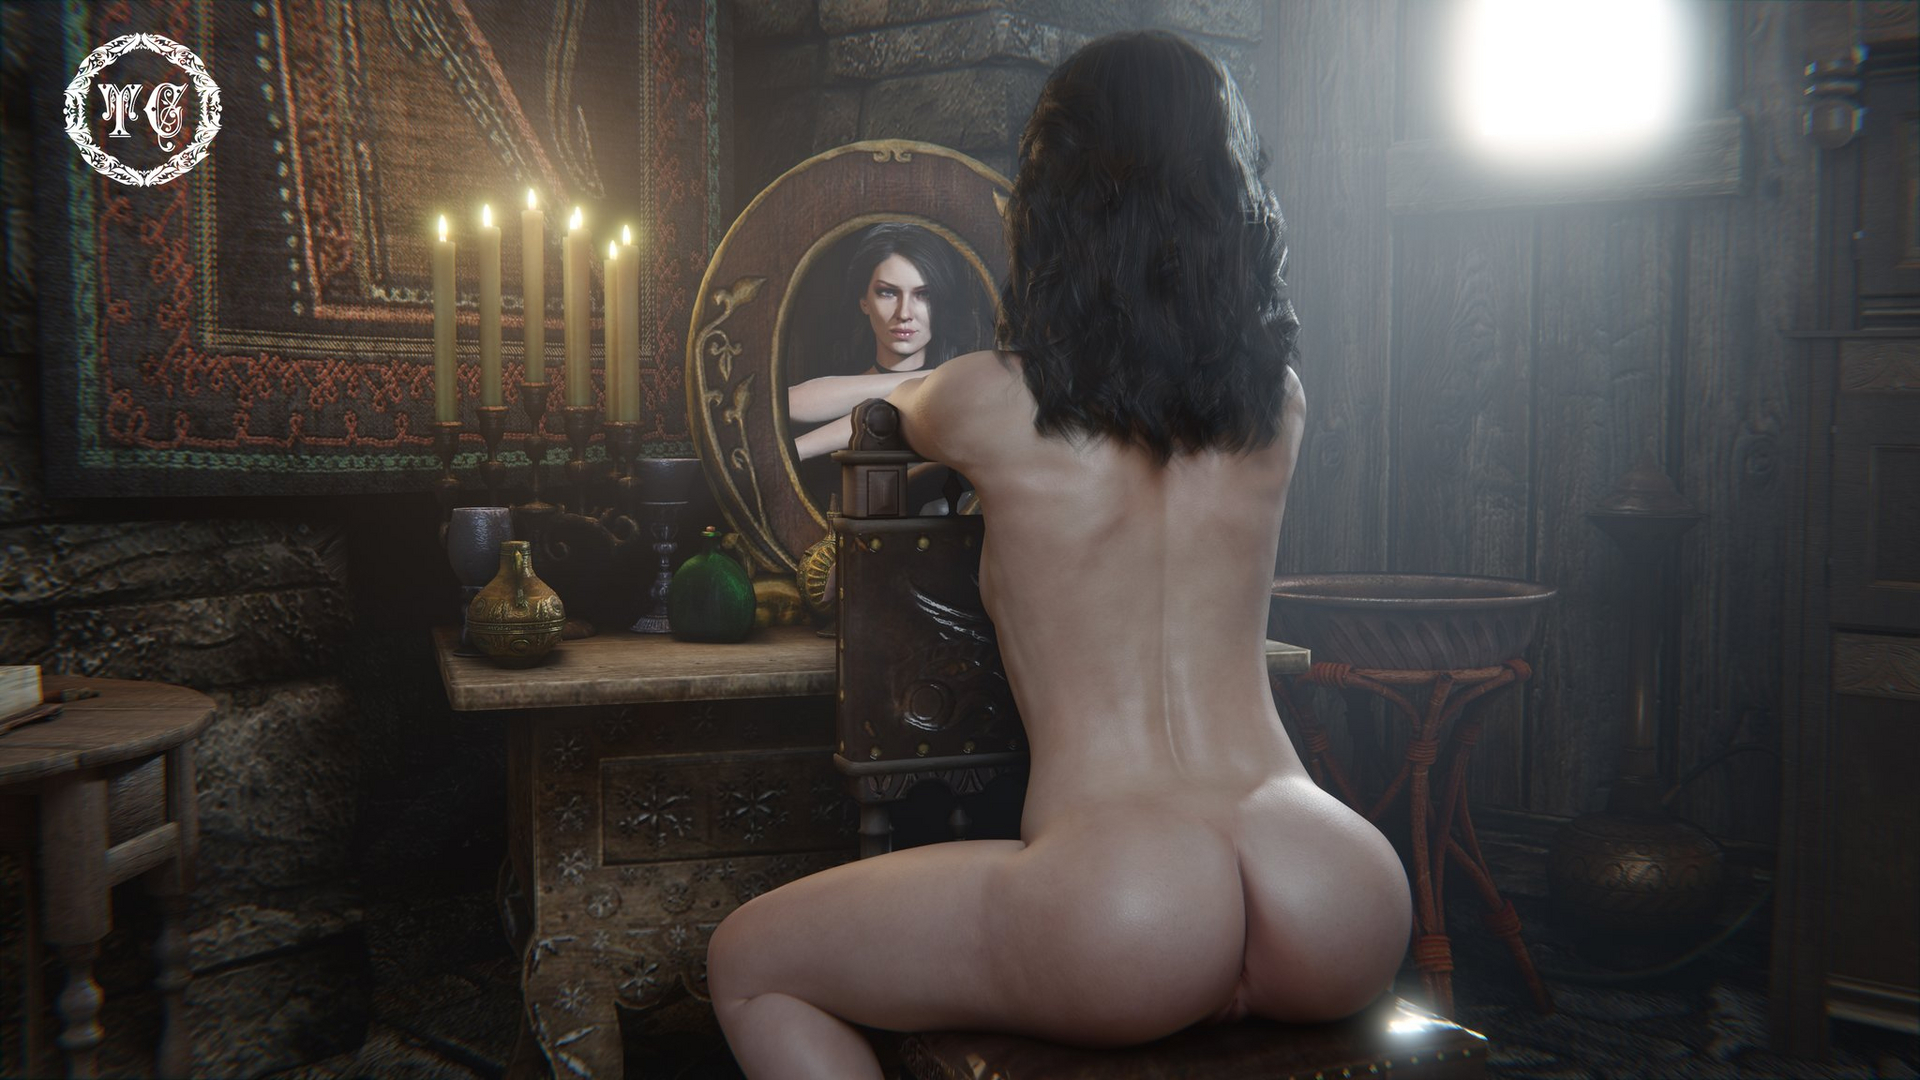 yennefer, yennefer of vengerberg, the witcher, the witcher 3